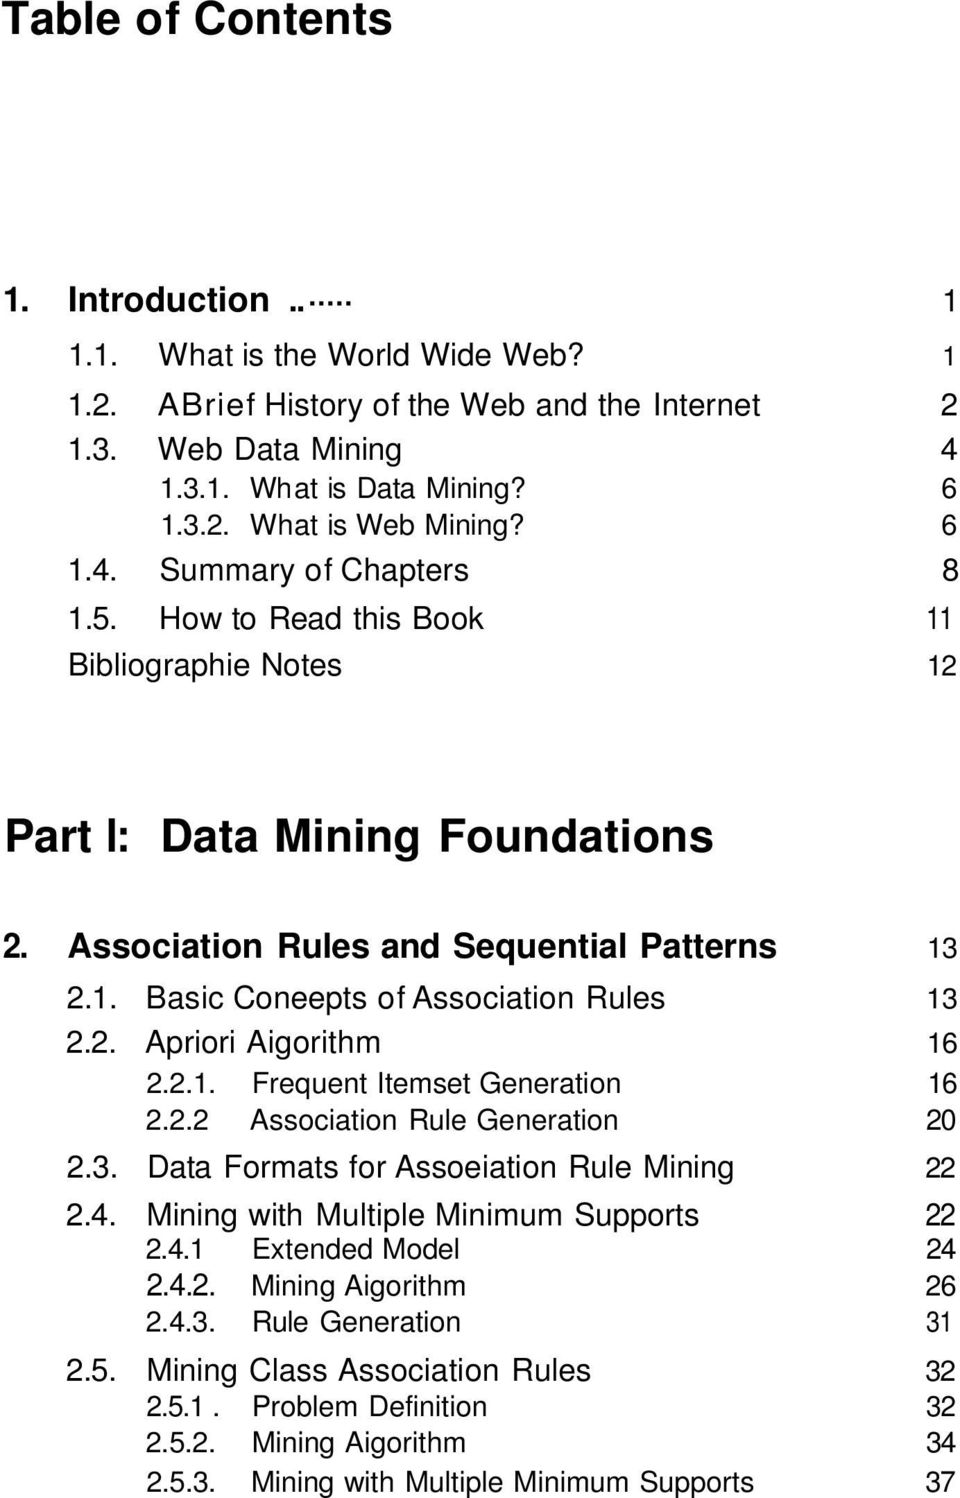 2. Apriori Aigorithm 16 2.2.1. Frequent Itemset Generation 16 2.2.2 Association Rule Generation 20 2.3. Data Formats for Assoeiation Rule Mining 22 2.4. Mining with Multiple Minimum Supports 22 2.4.1 Extended Model 24 2.